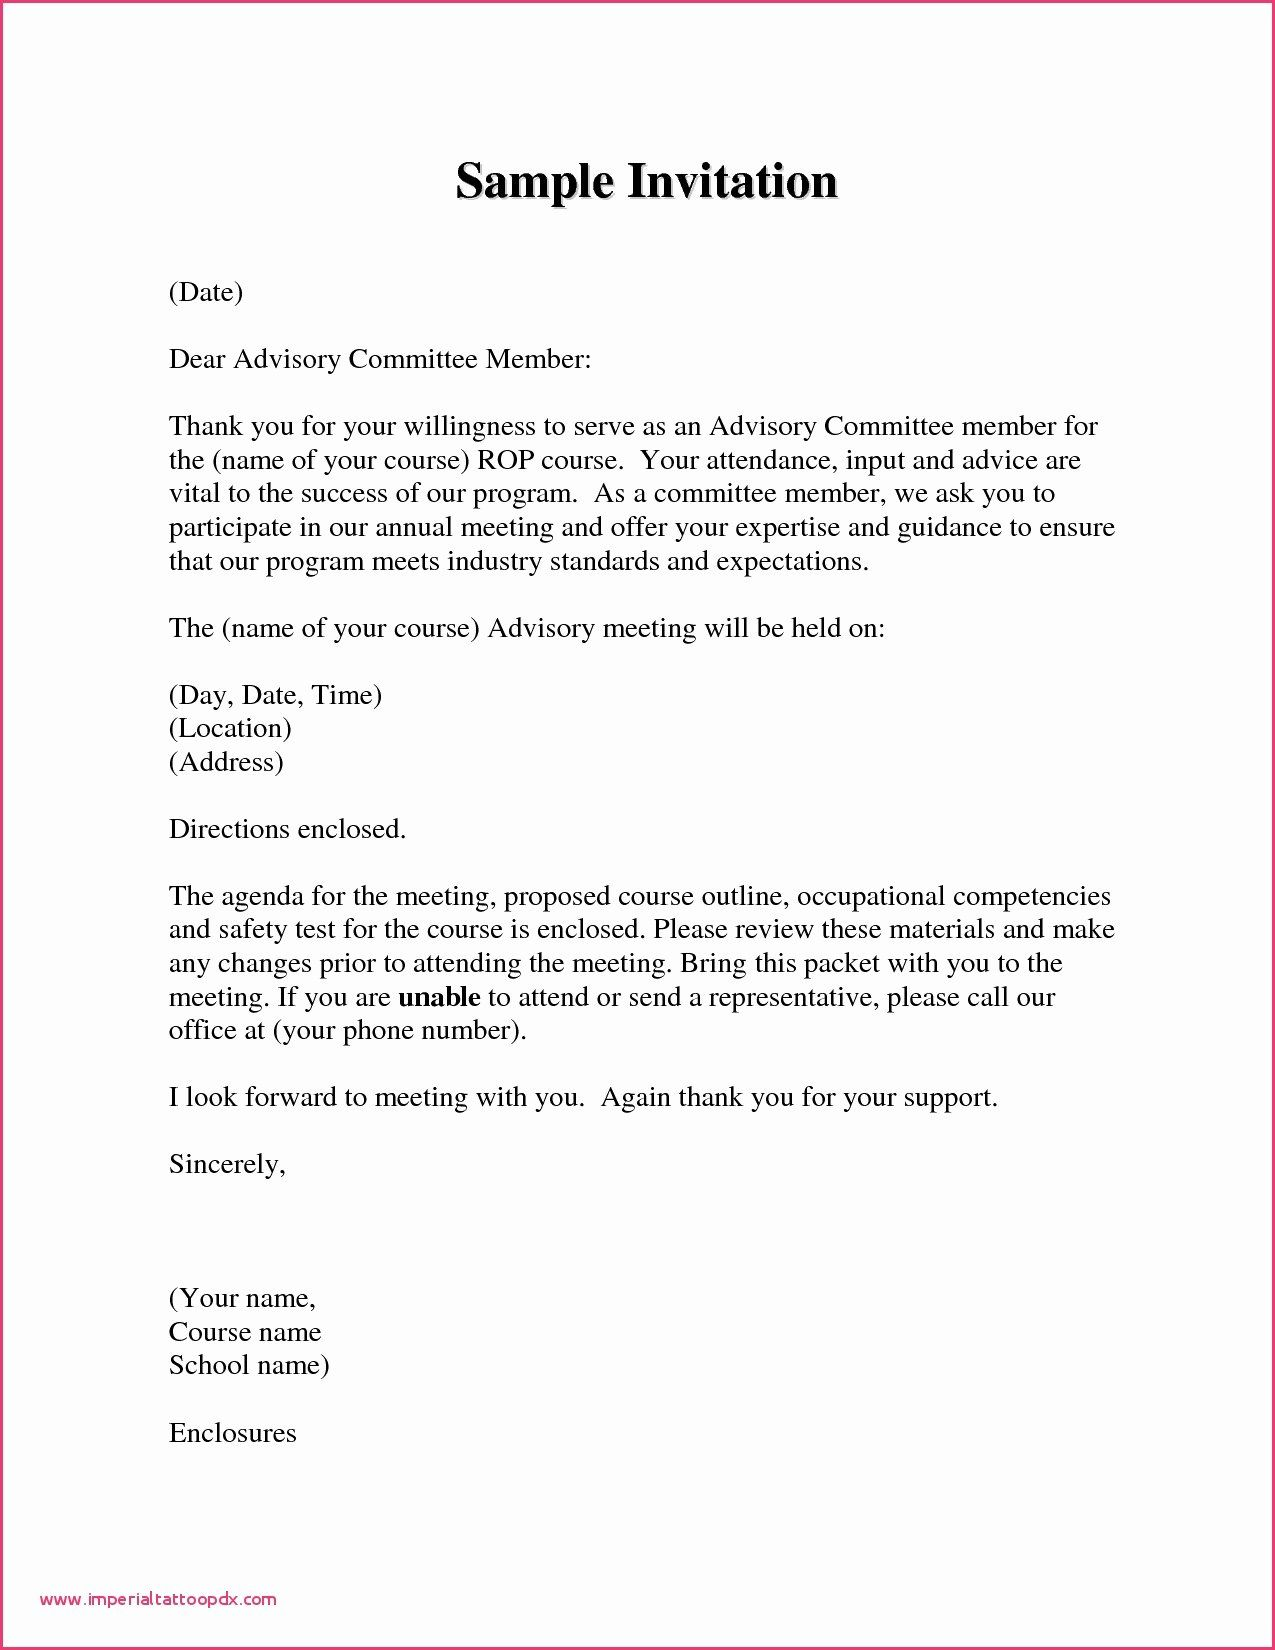 Meet and Greet Invitation Templates Awesome Business Letter format  Invitation formal Letter Templat… in 2020 | Conference invitation, Formal  invitation, Invitation template